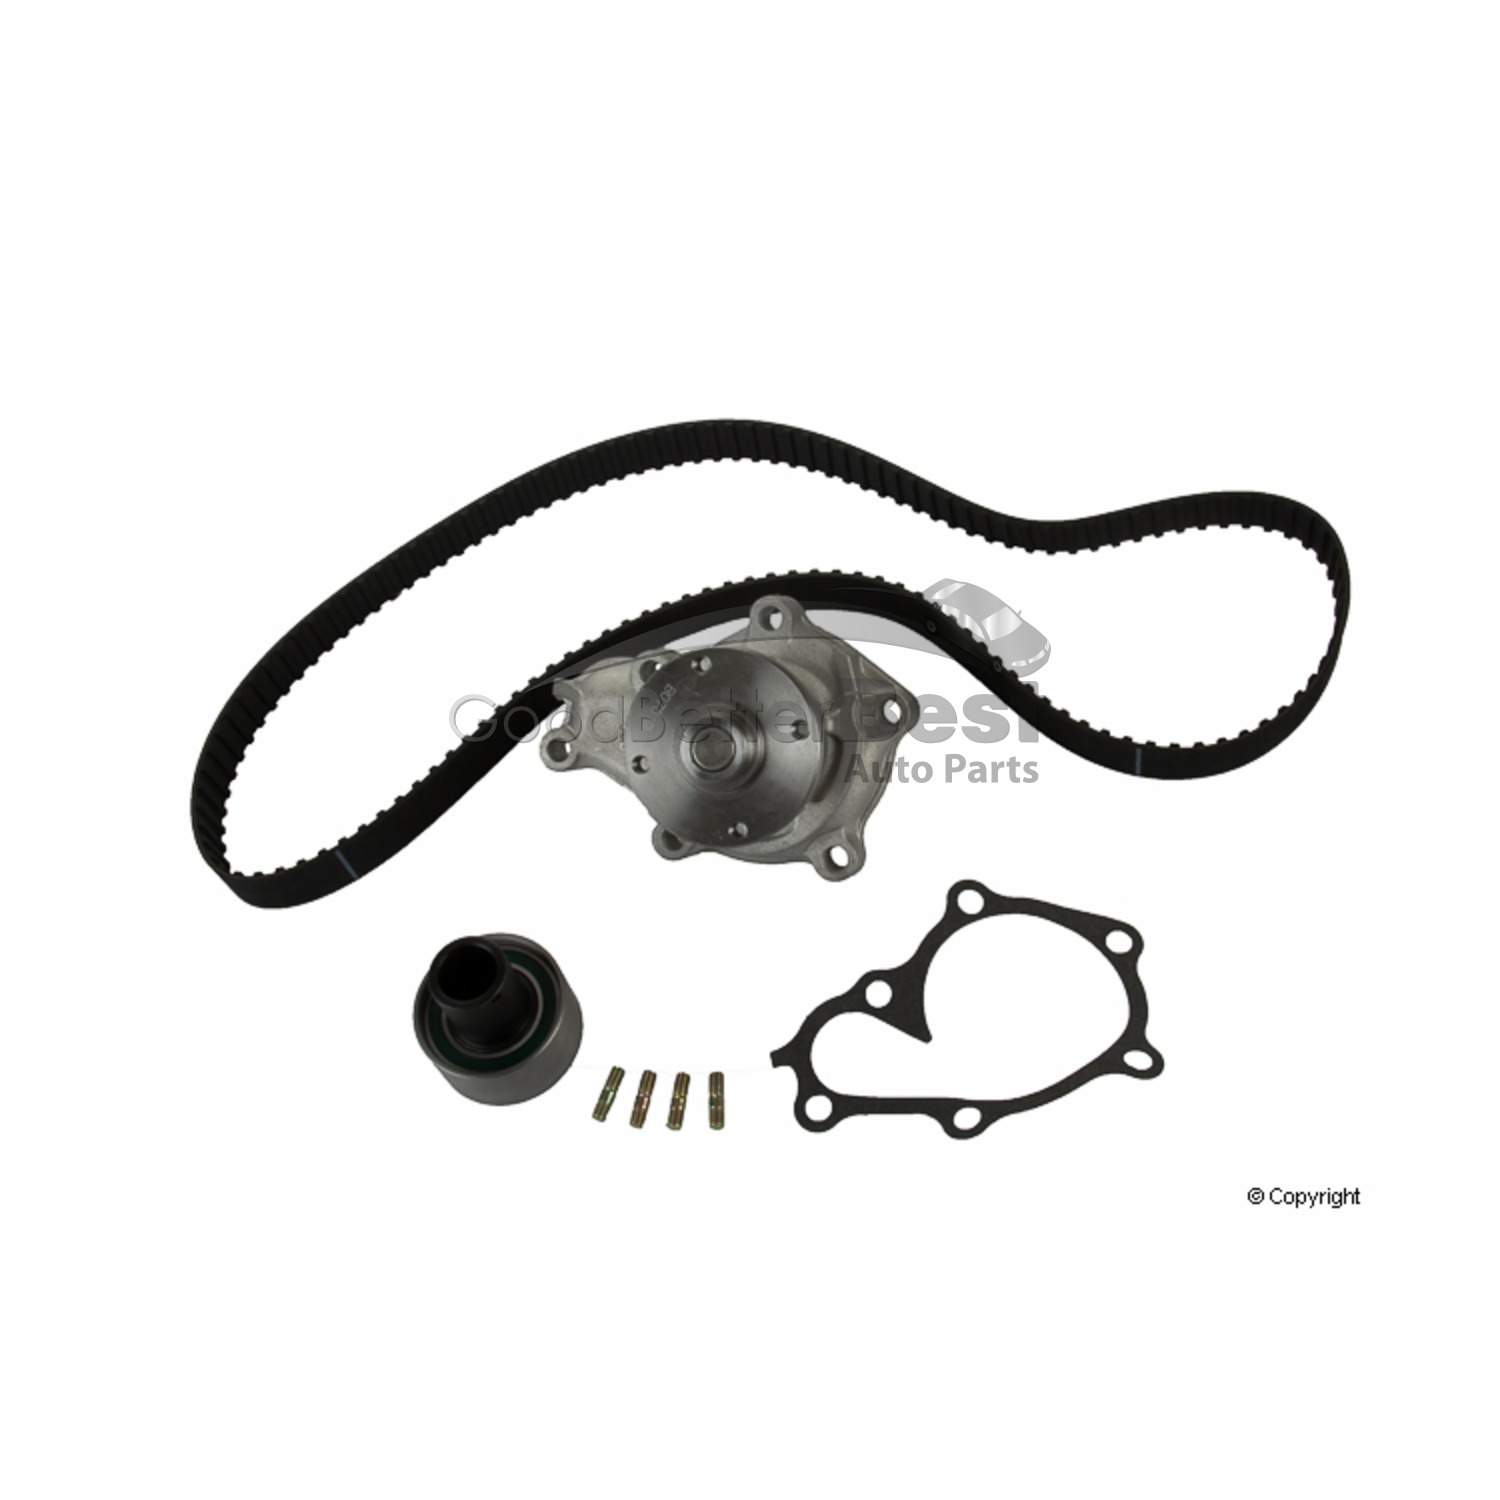 Infiniti Timing Belt New Gates Engine Kit With Water Pump For Nissan 1500x1500